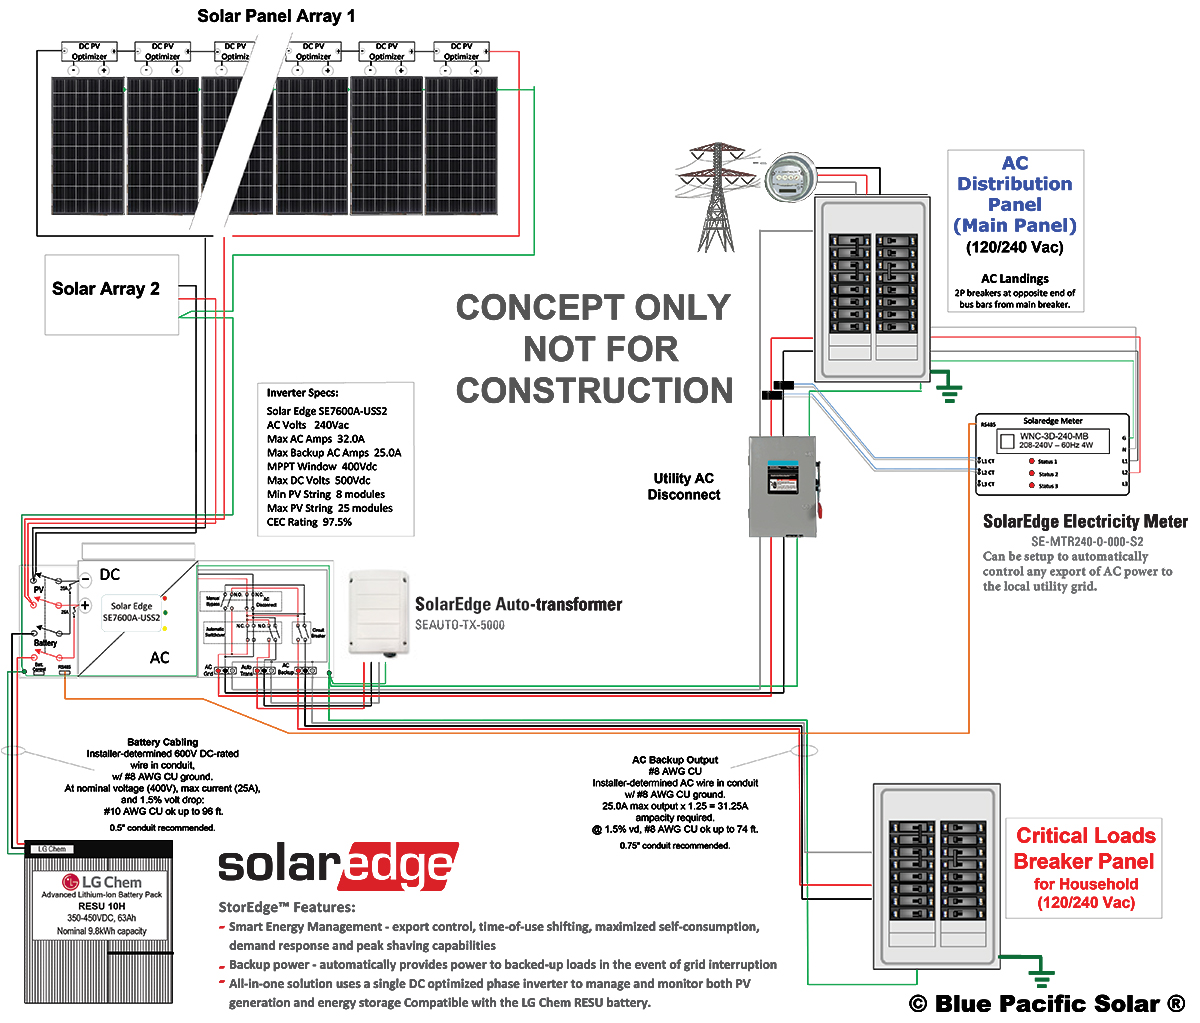 Solaredge Wiring Diagram from www.bluepacificsolar.com